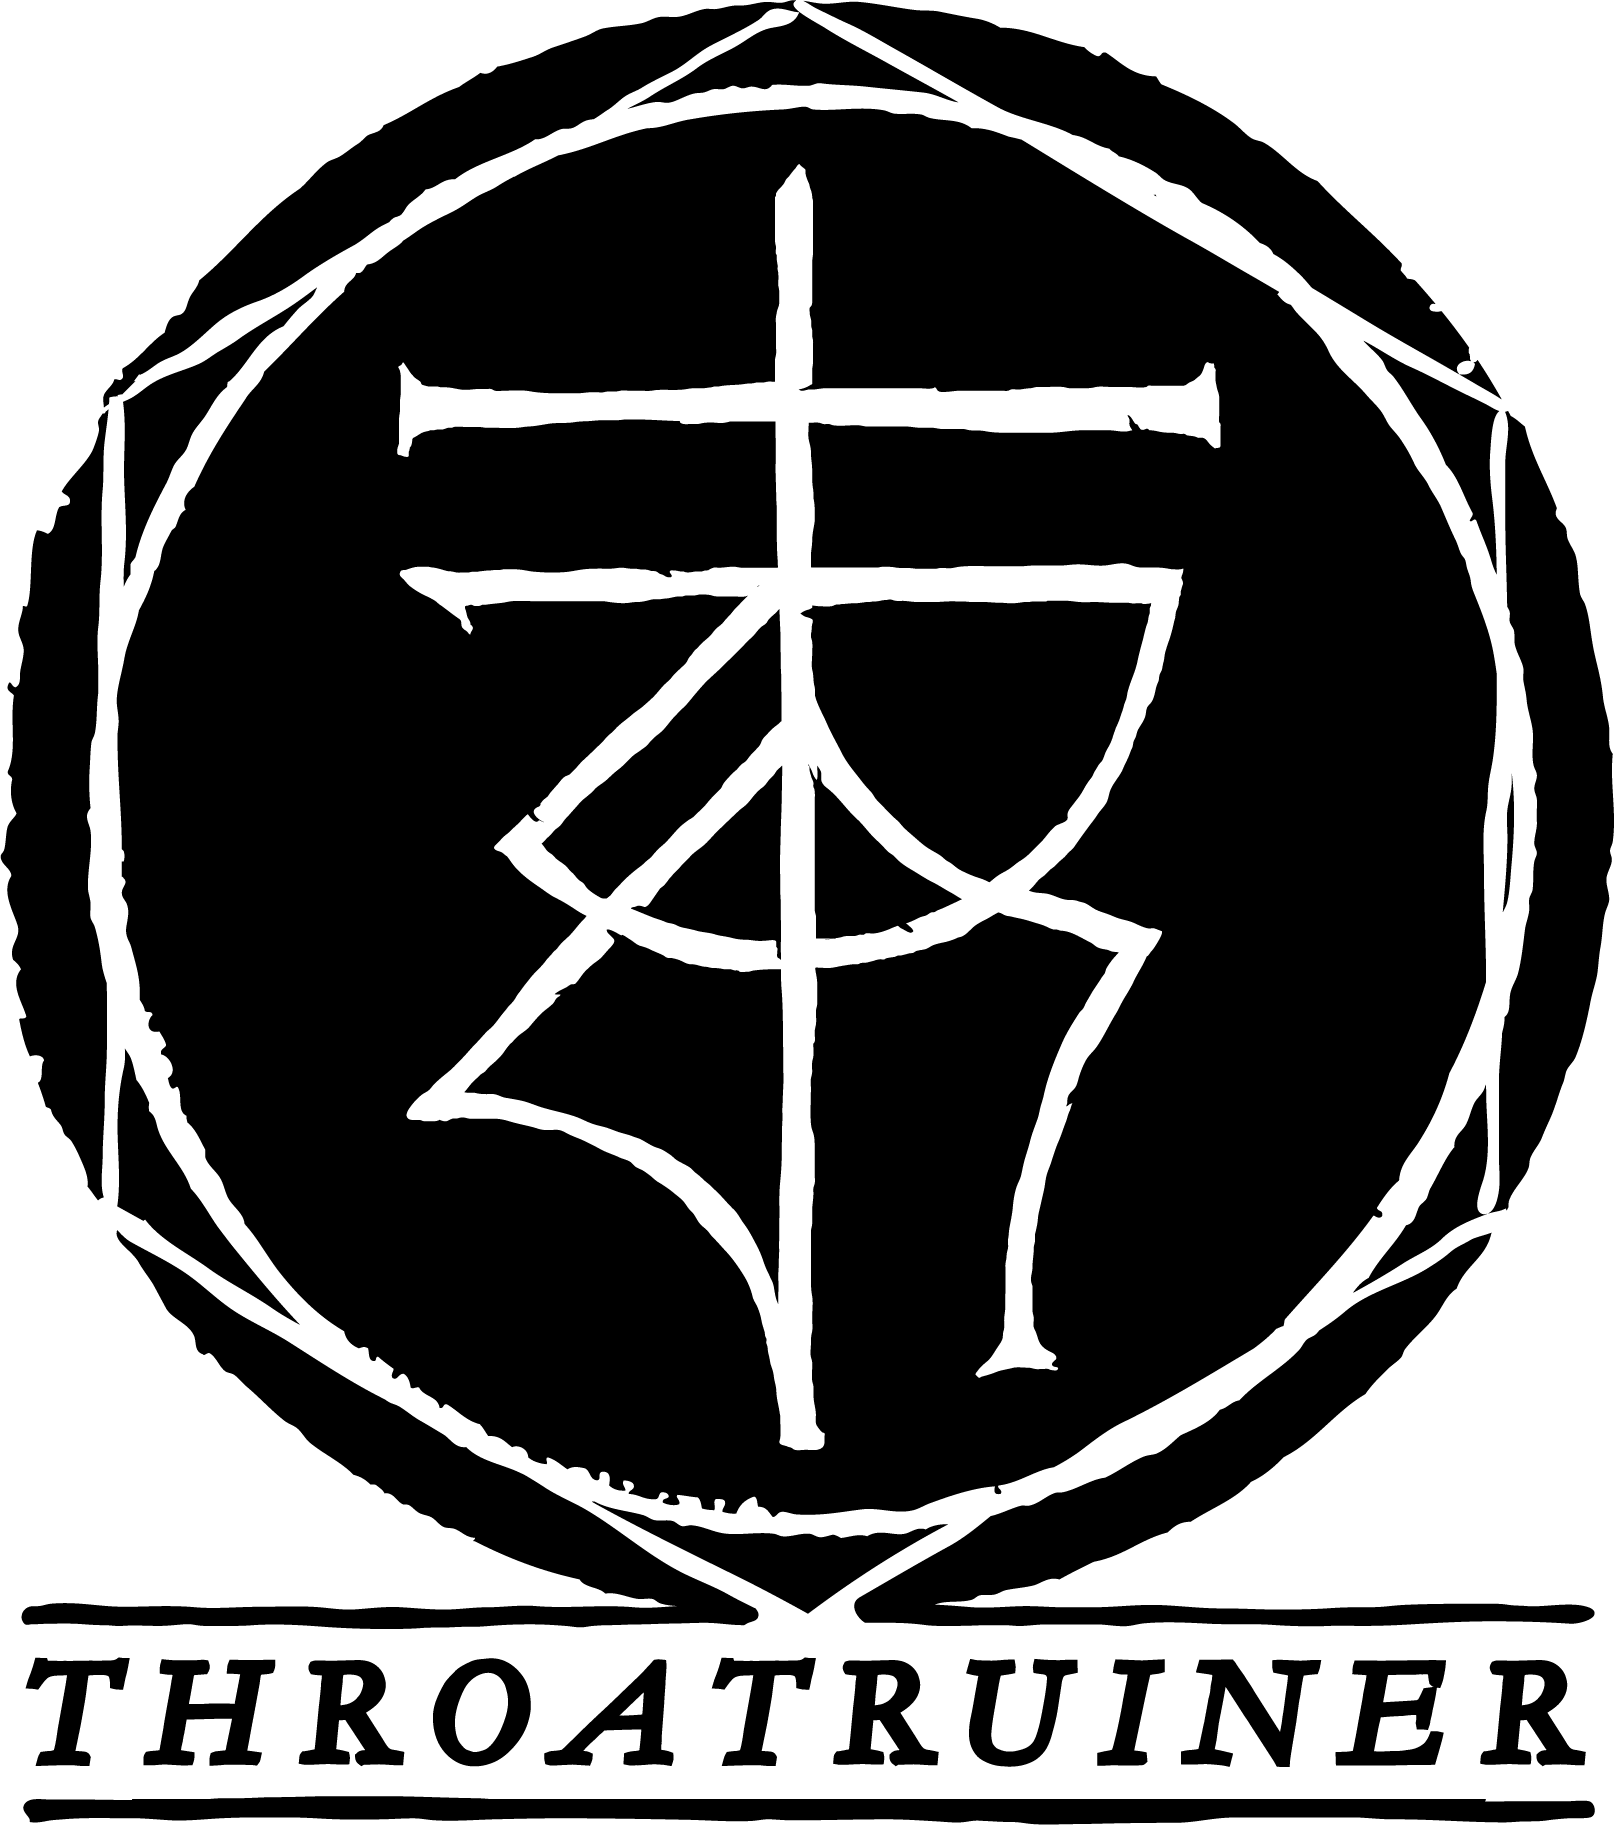 THROATRUINER_LOGO-07.png